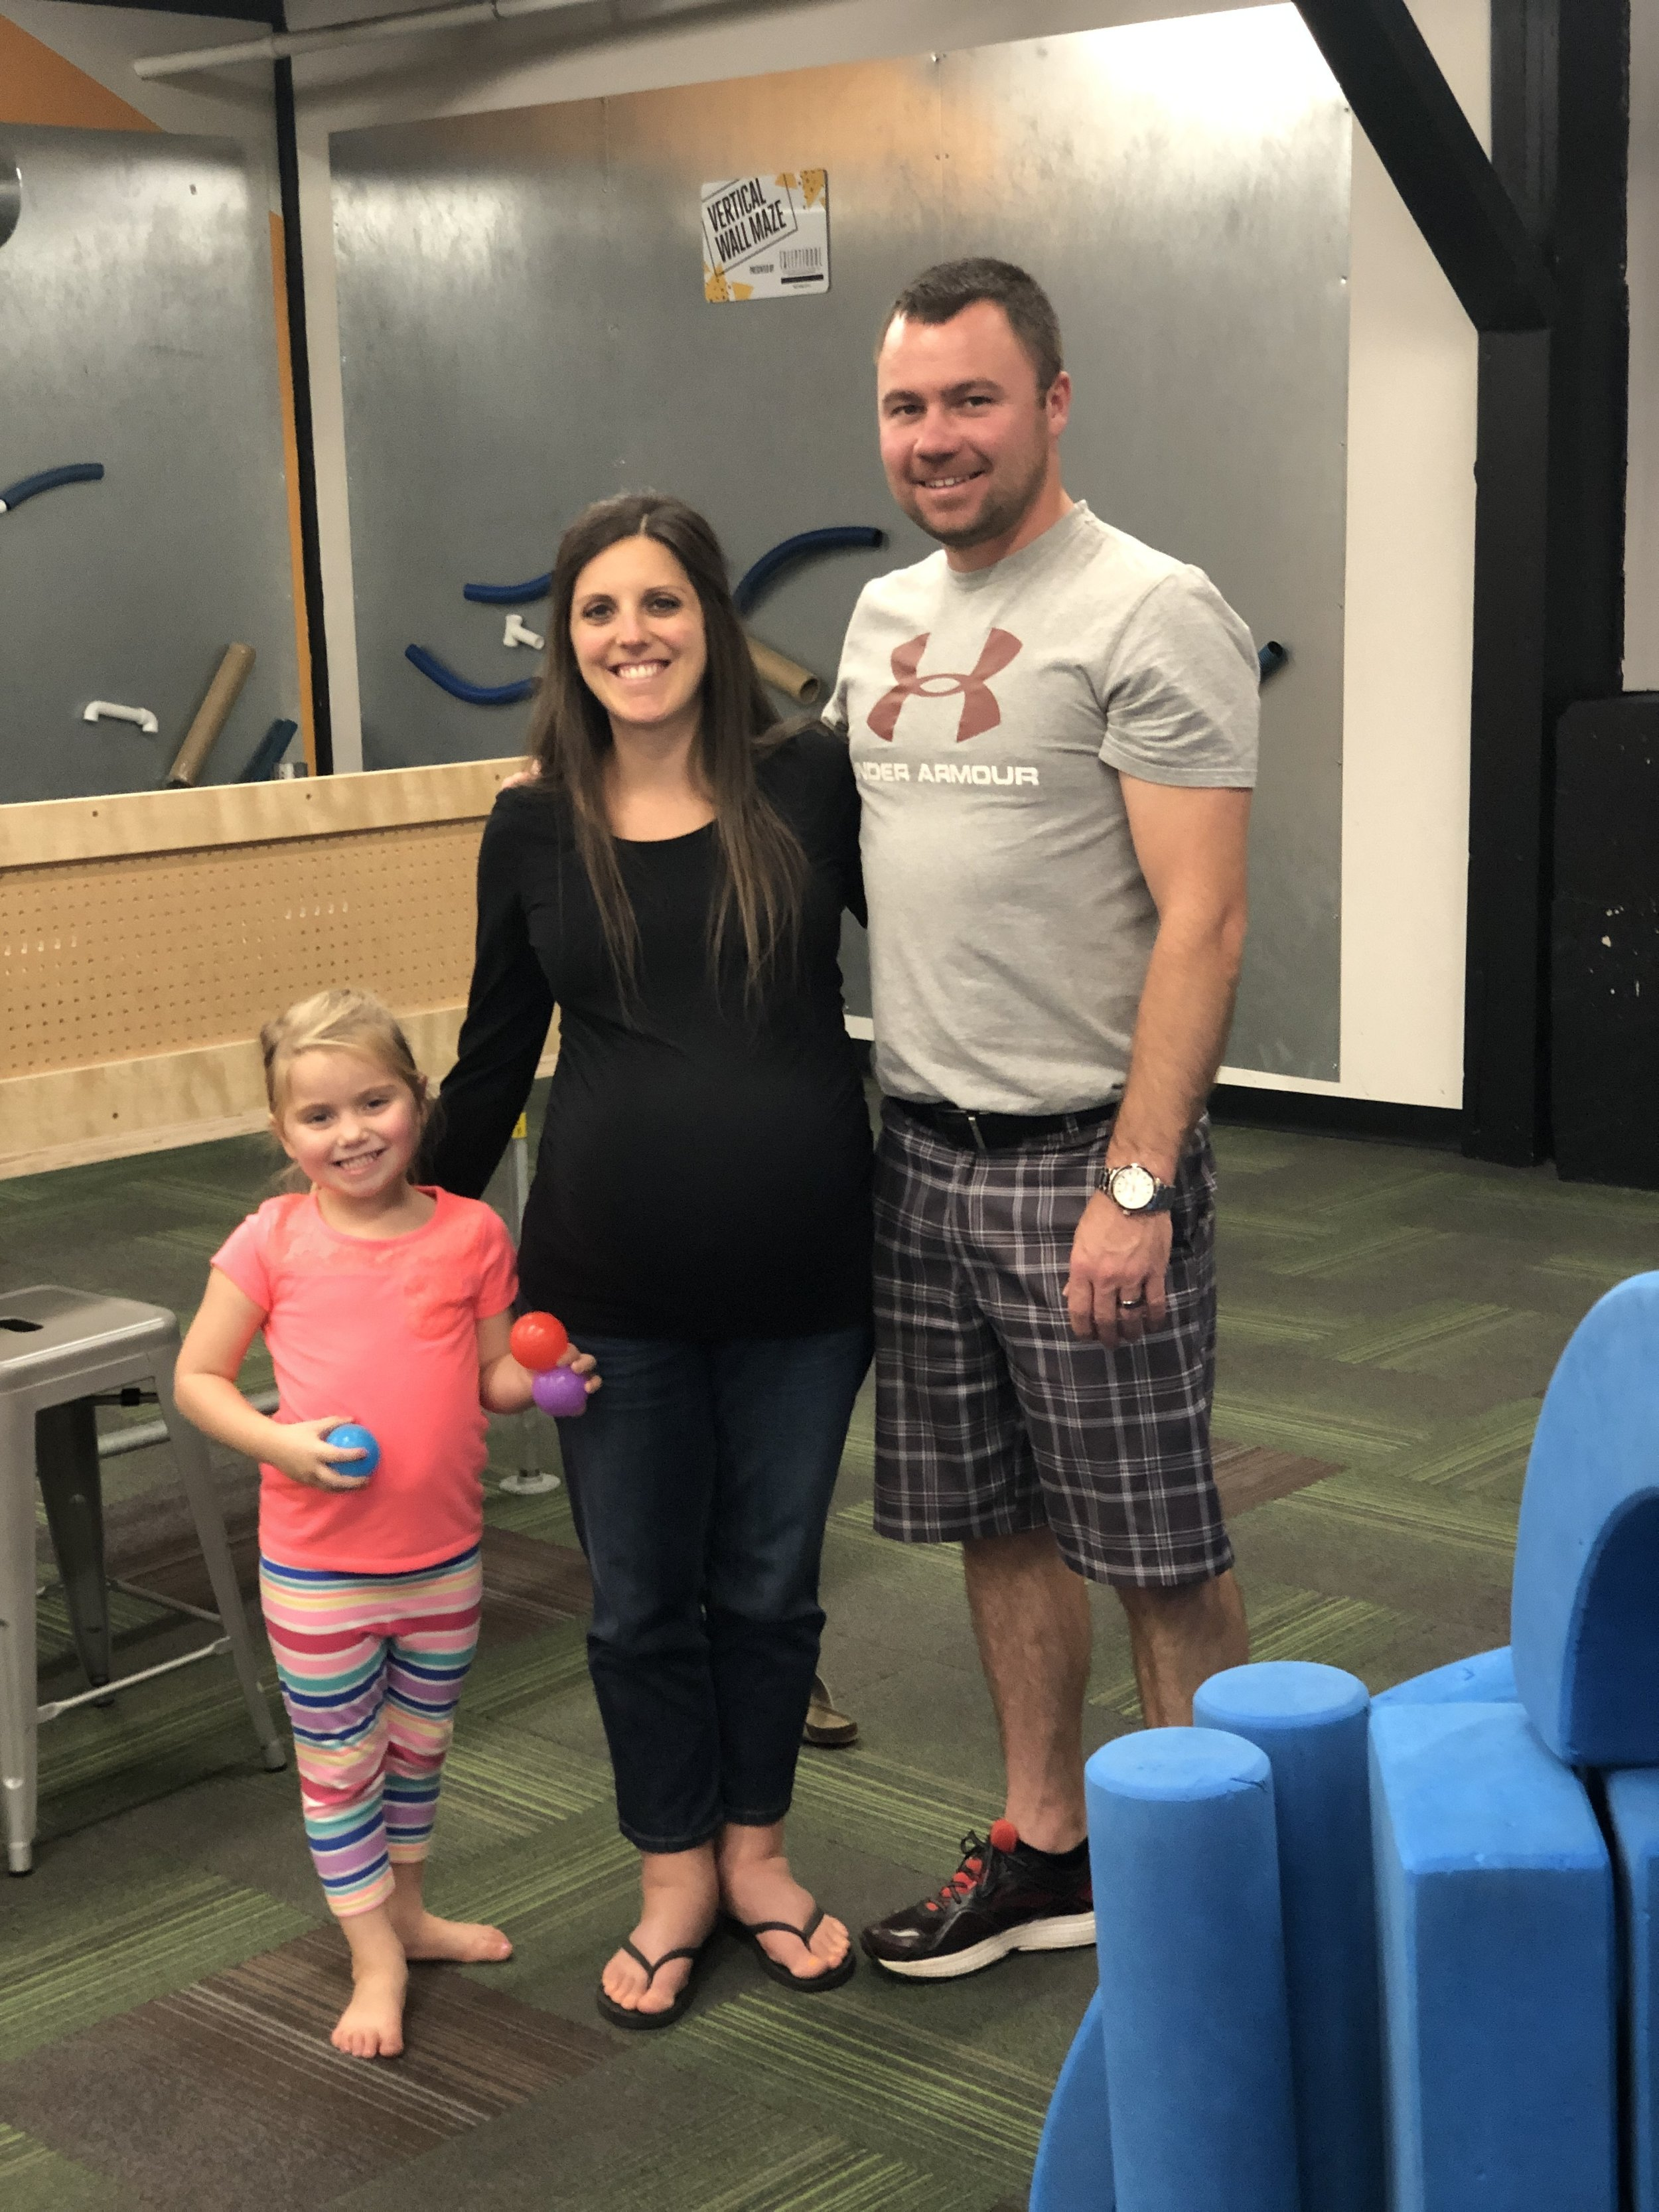 This cute family of 3 is having a special day together before little brother or sister arrive!